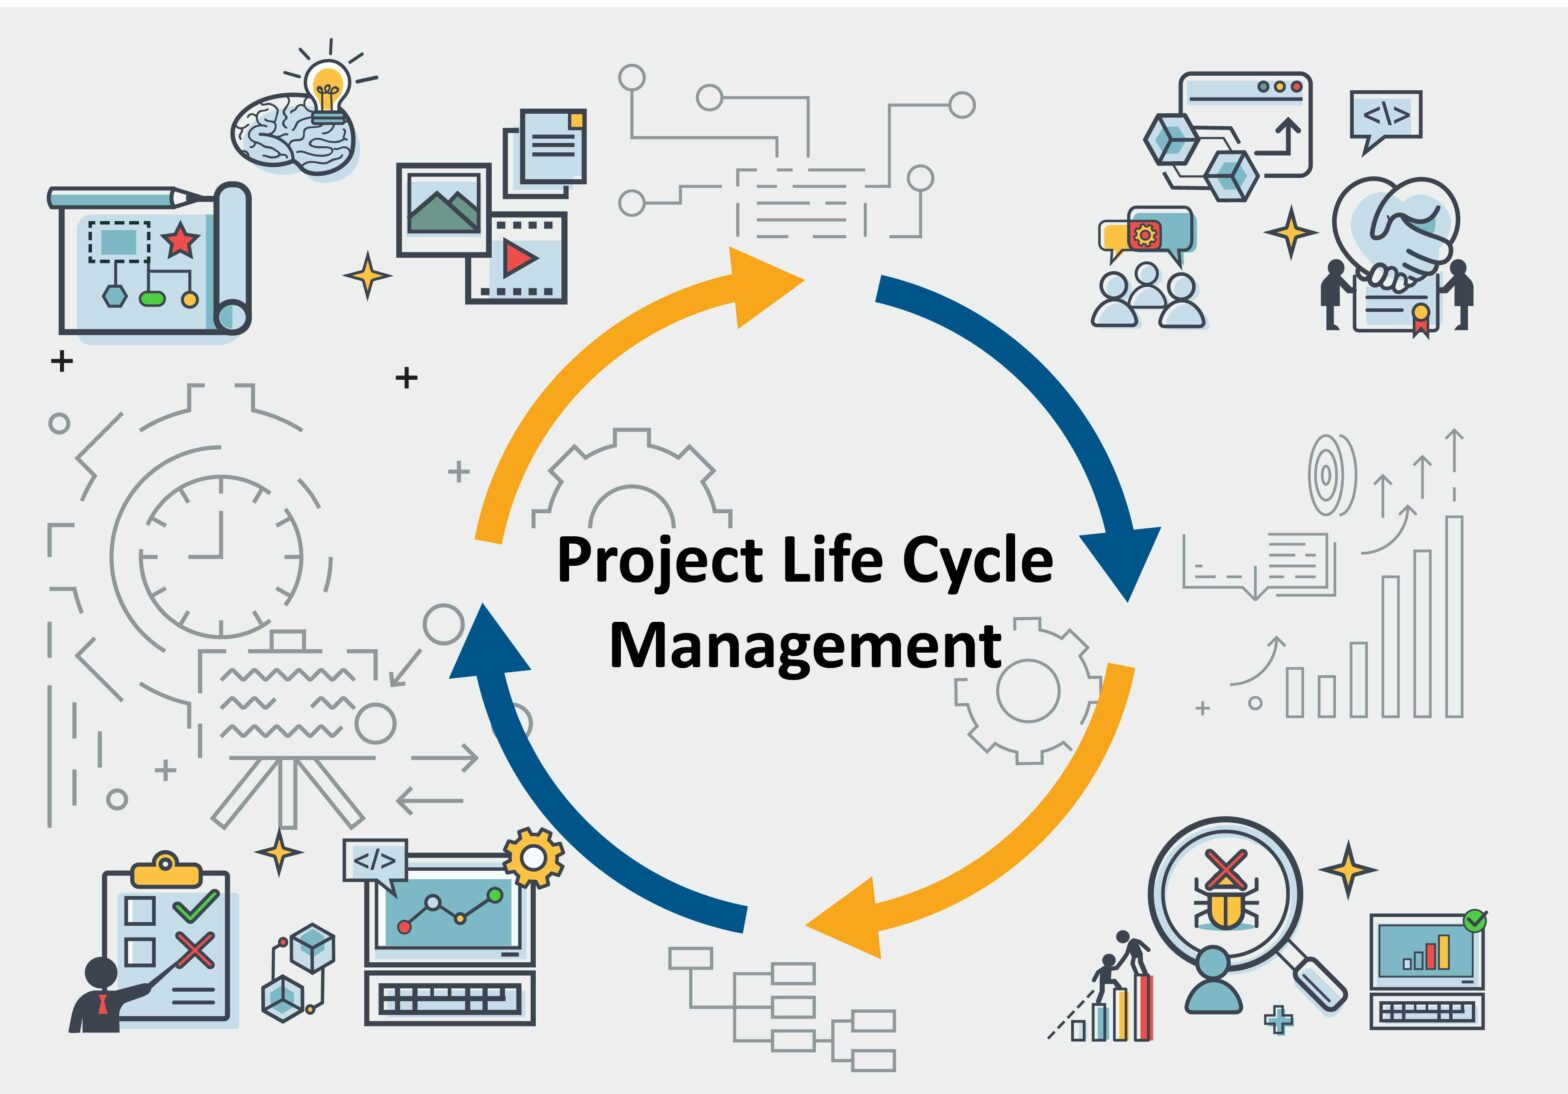 Project Life Cycle Management